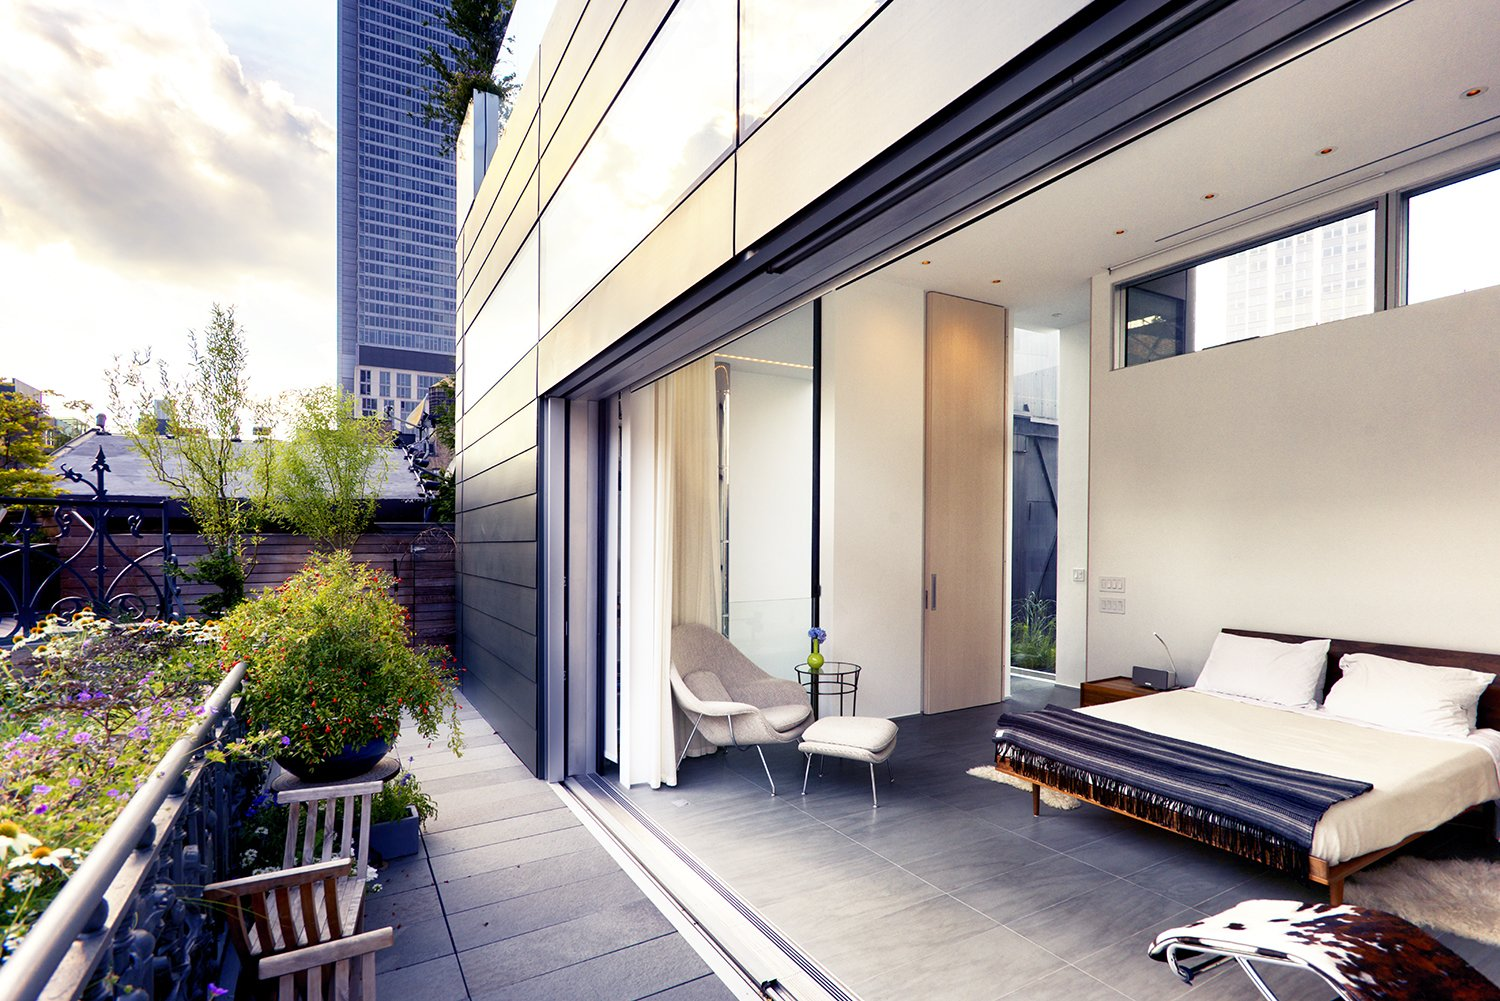 An expansive sliding glass door retracts into the zinc facade, opening up the master suite to a garden terrace. This echoes a 15-foot Corian wall that transforms a children's bedroom into an entertainment space, allowing flexibility and anticipating the time when the boys leave for college. Tagged: Bedroom, Bed, Chair, Recessed Lighting, and Night Stands.  Best Photos from A Rooftop Addition on a 19th-Century Building Suits a Growing Family's Needs